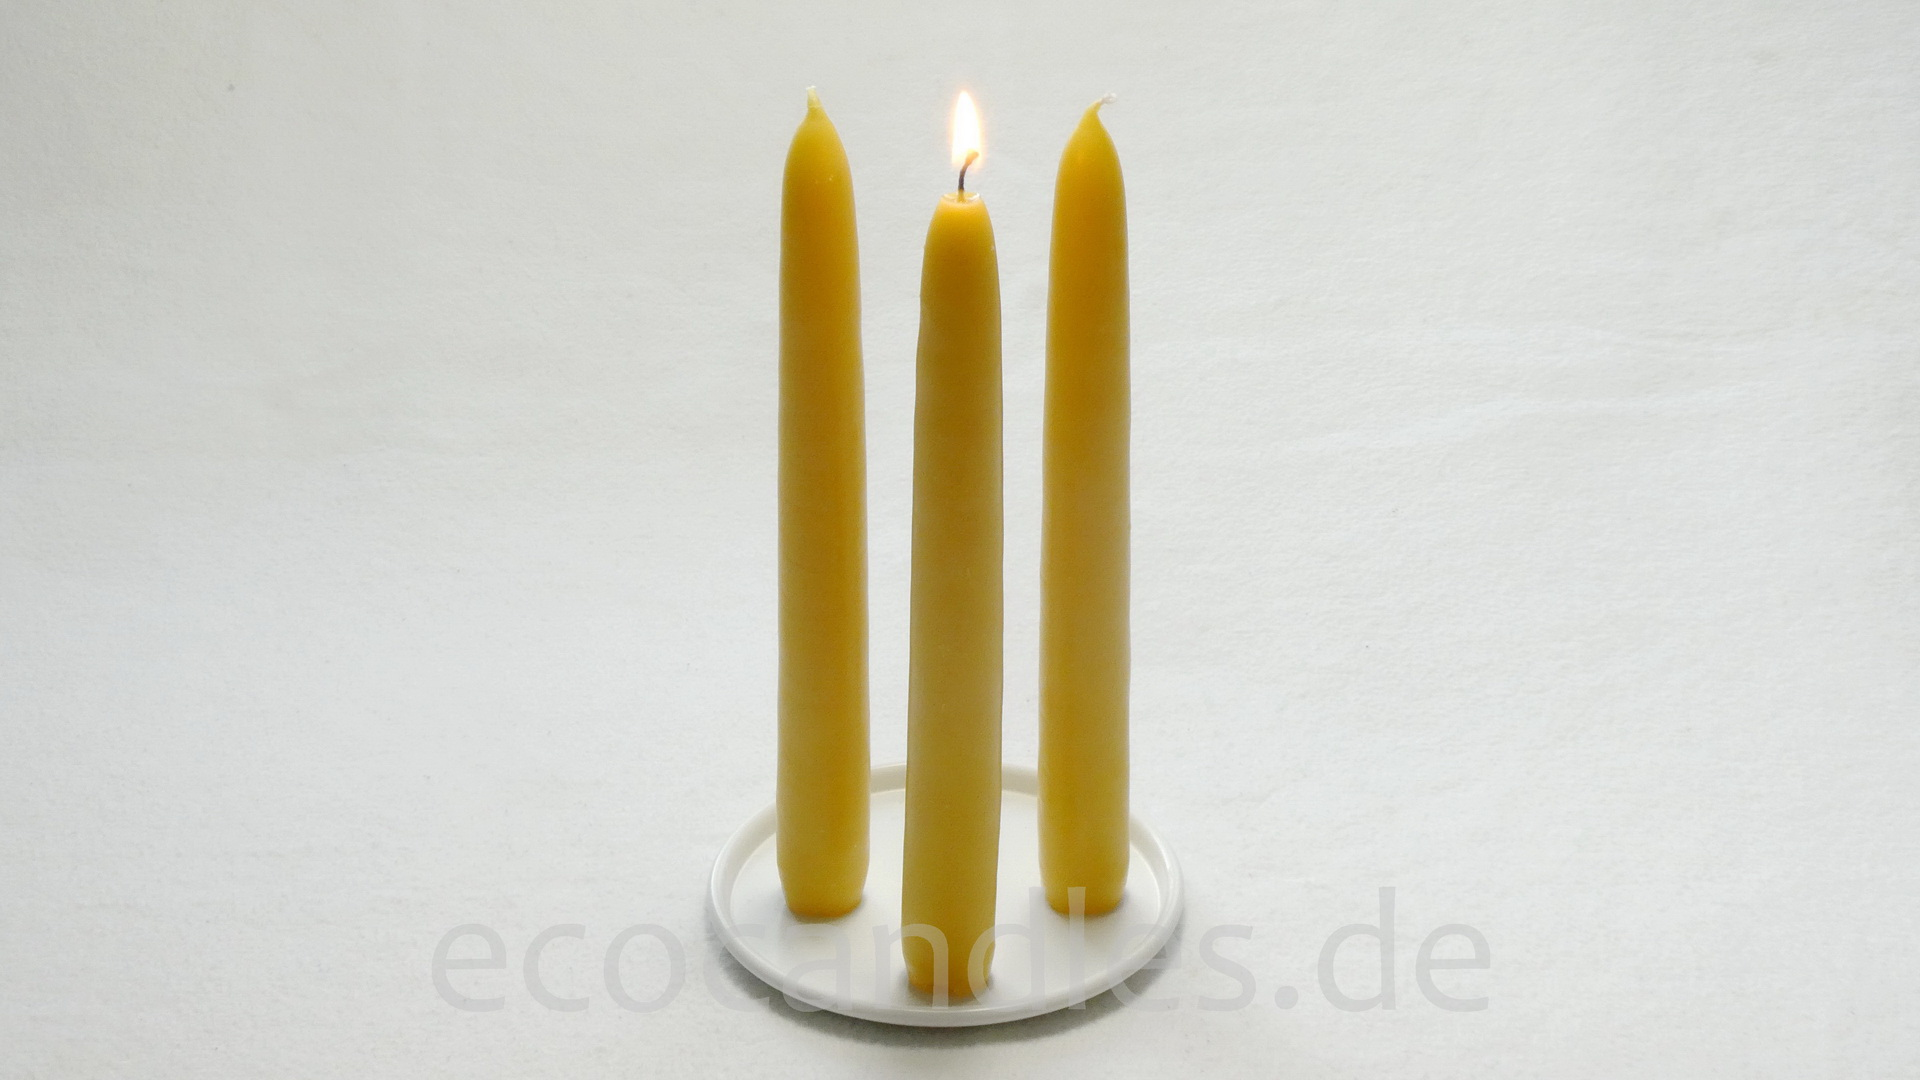 Beeswax-table candle 18 cm